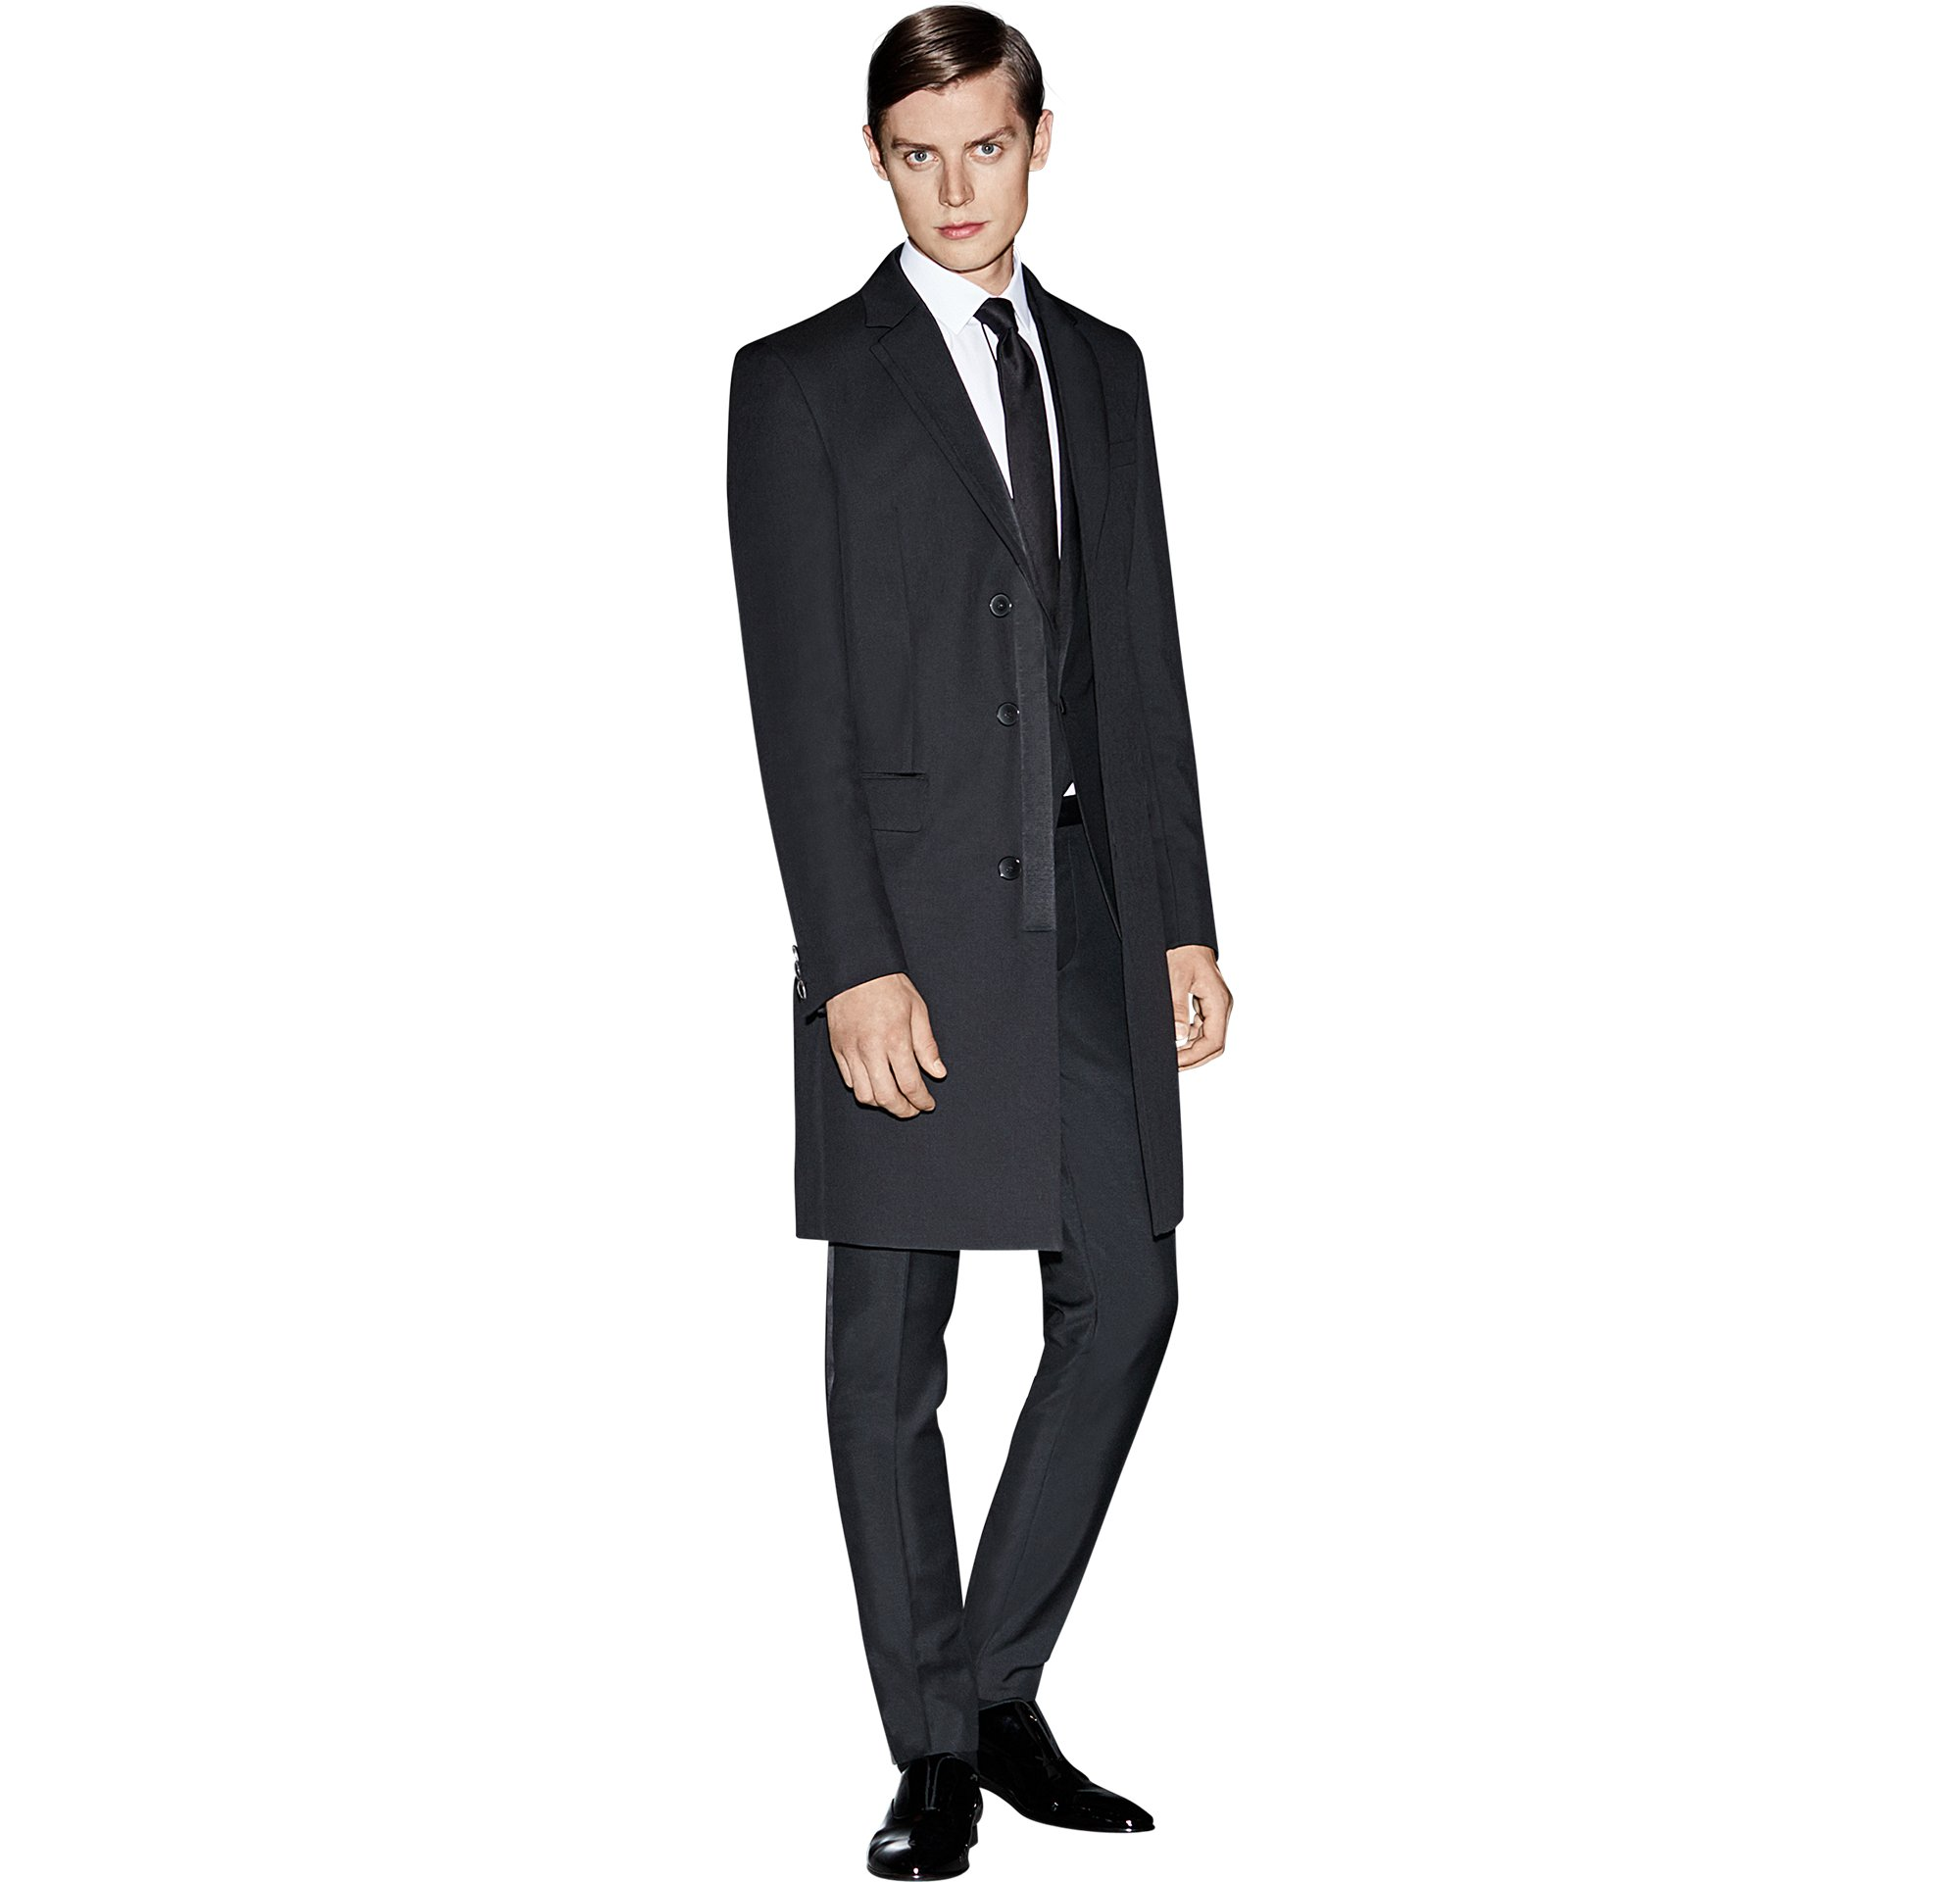 Black coat over black suit and white shirt with a black tie and black shoes by BOSS